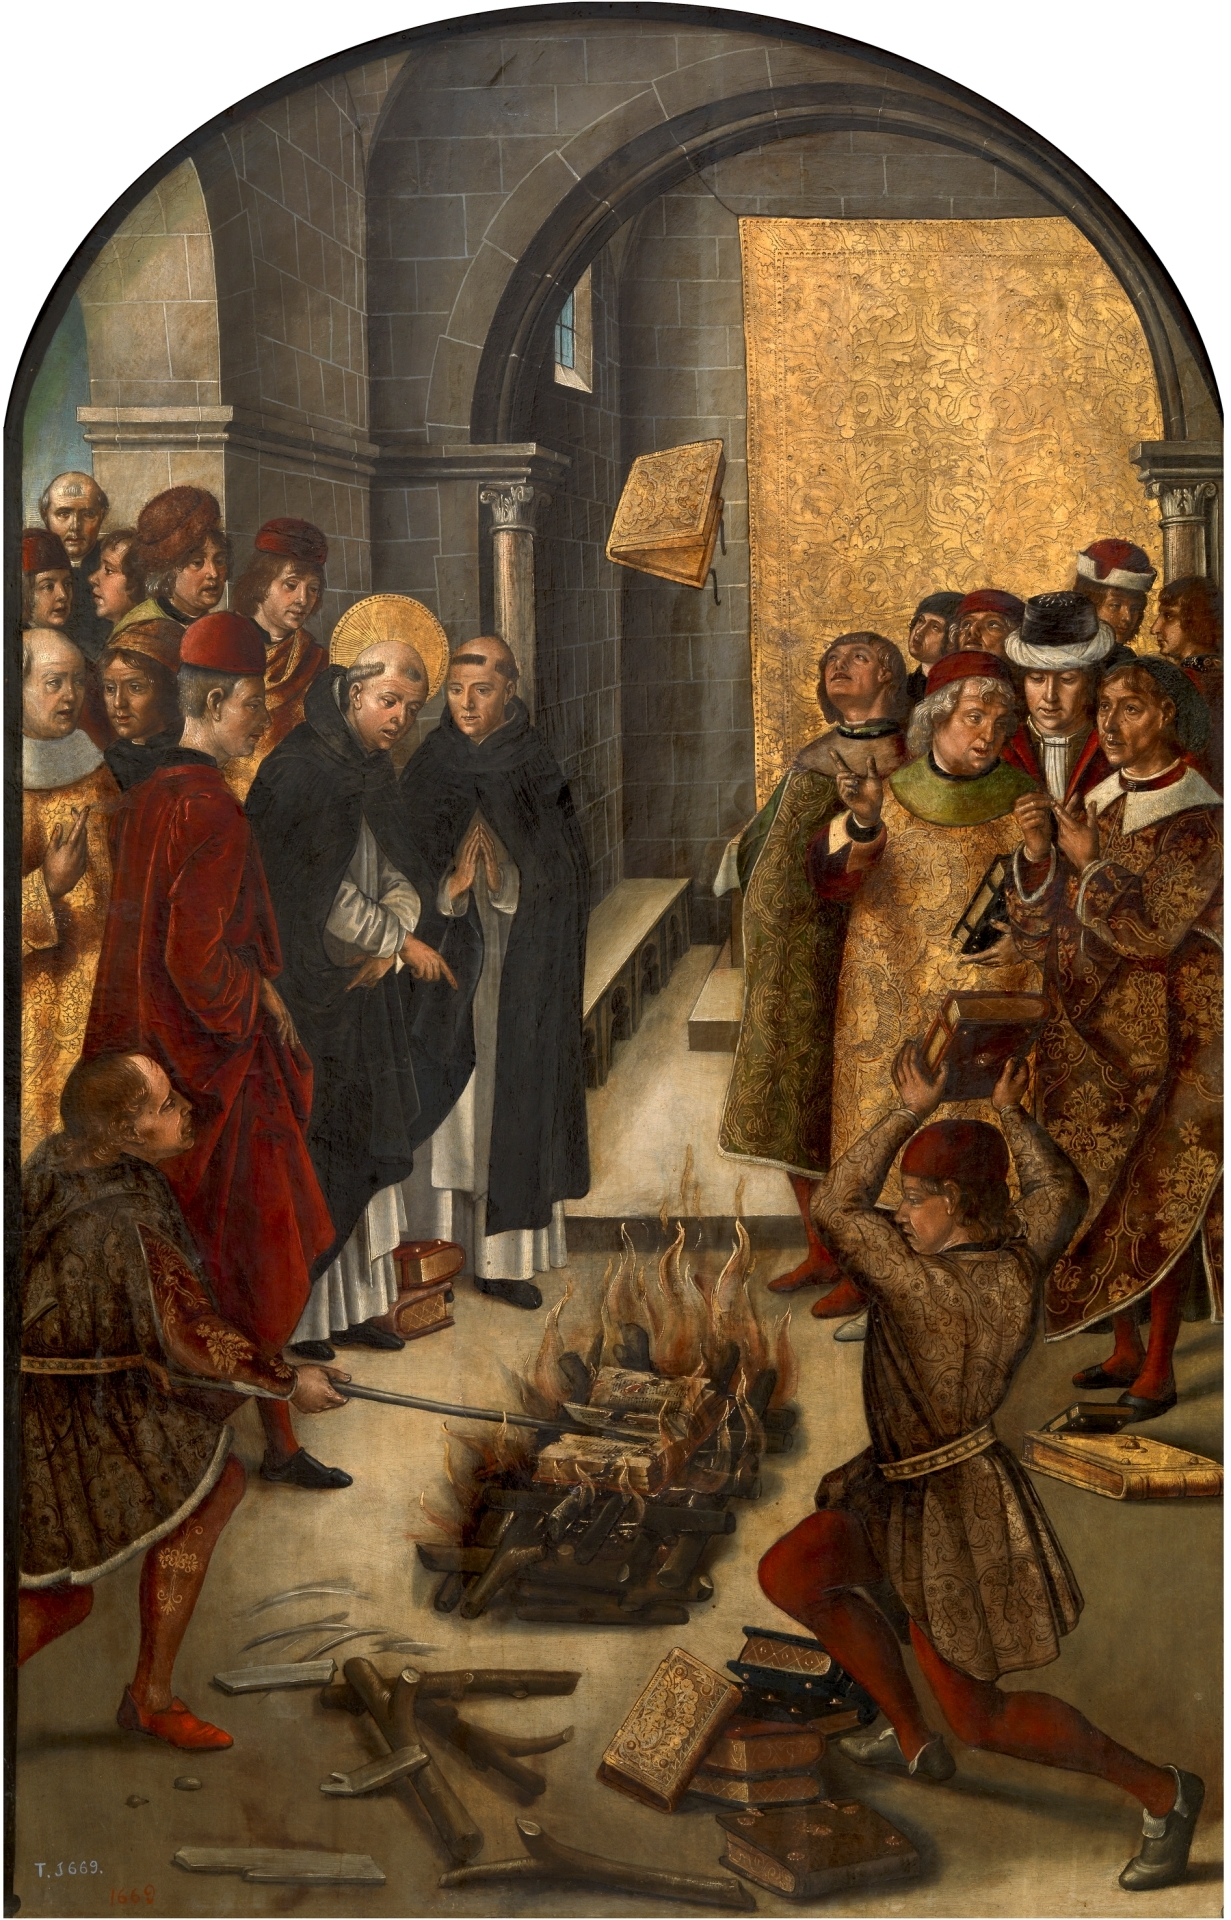 The burning of books condemned by the Inquisition.